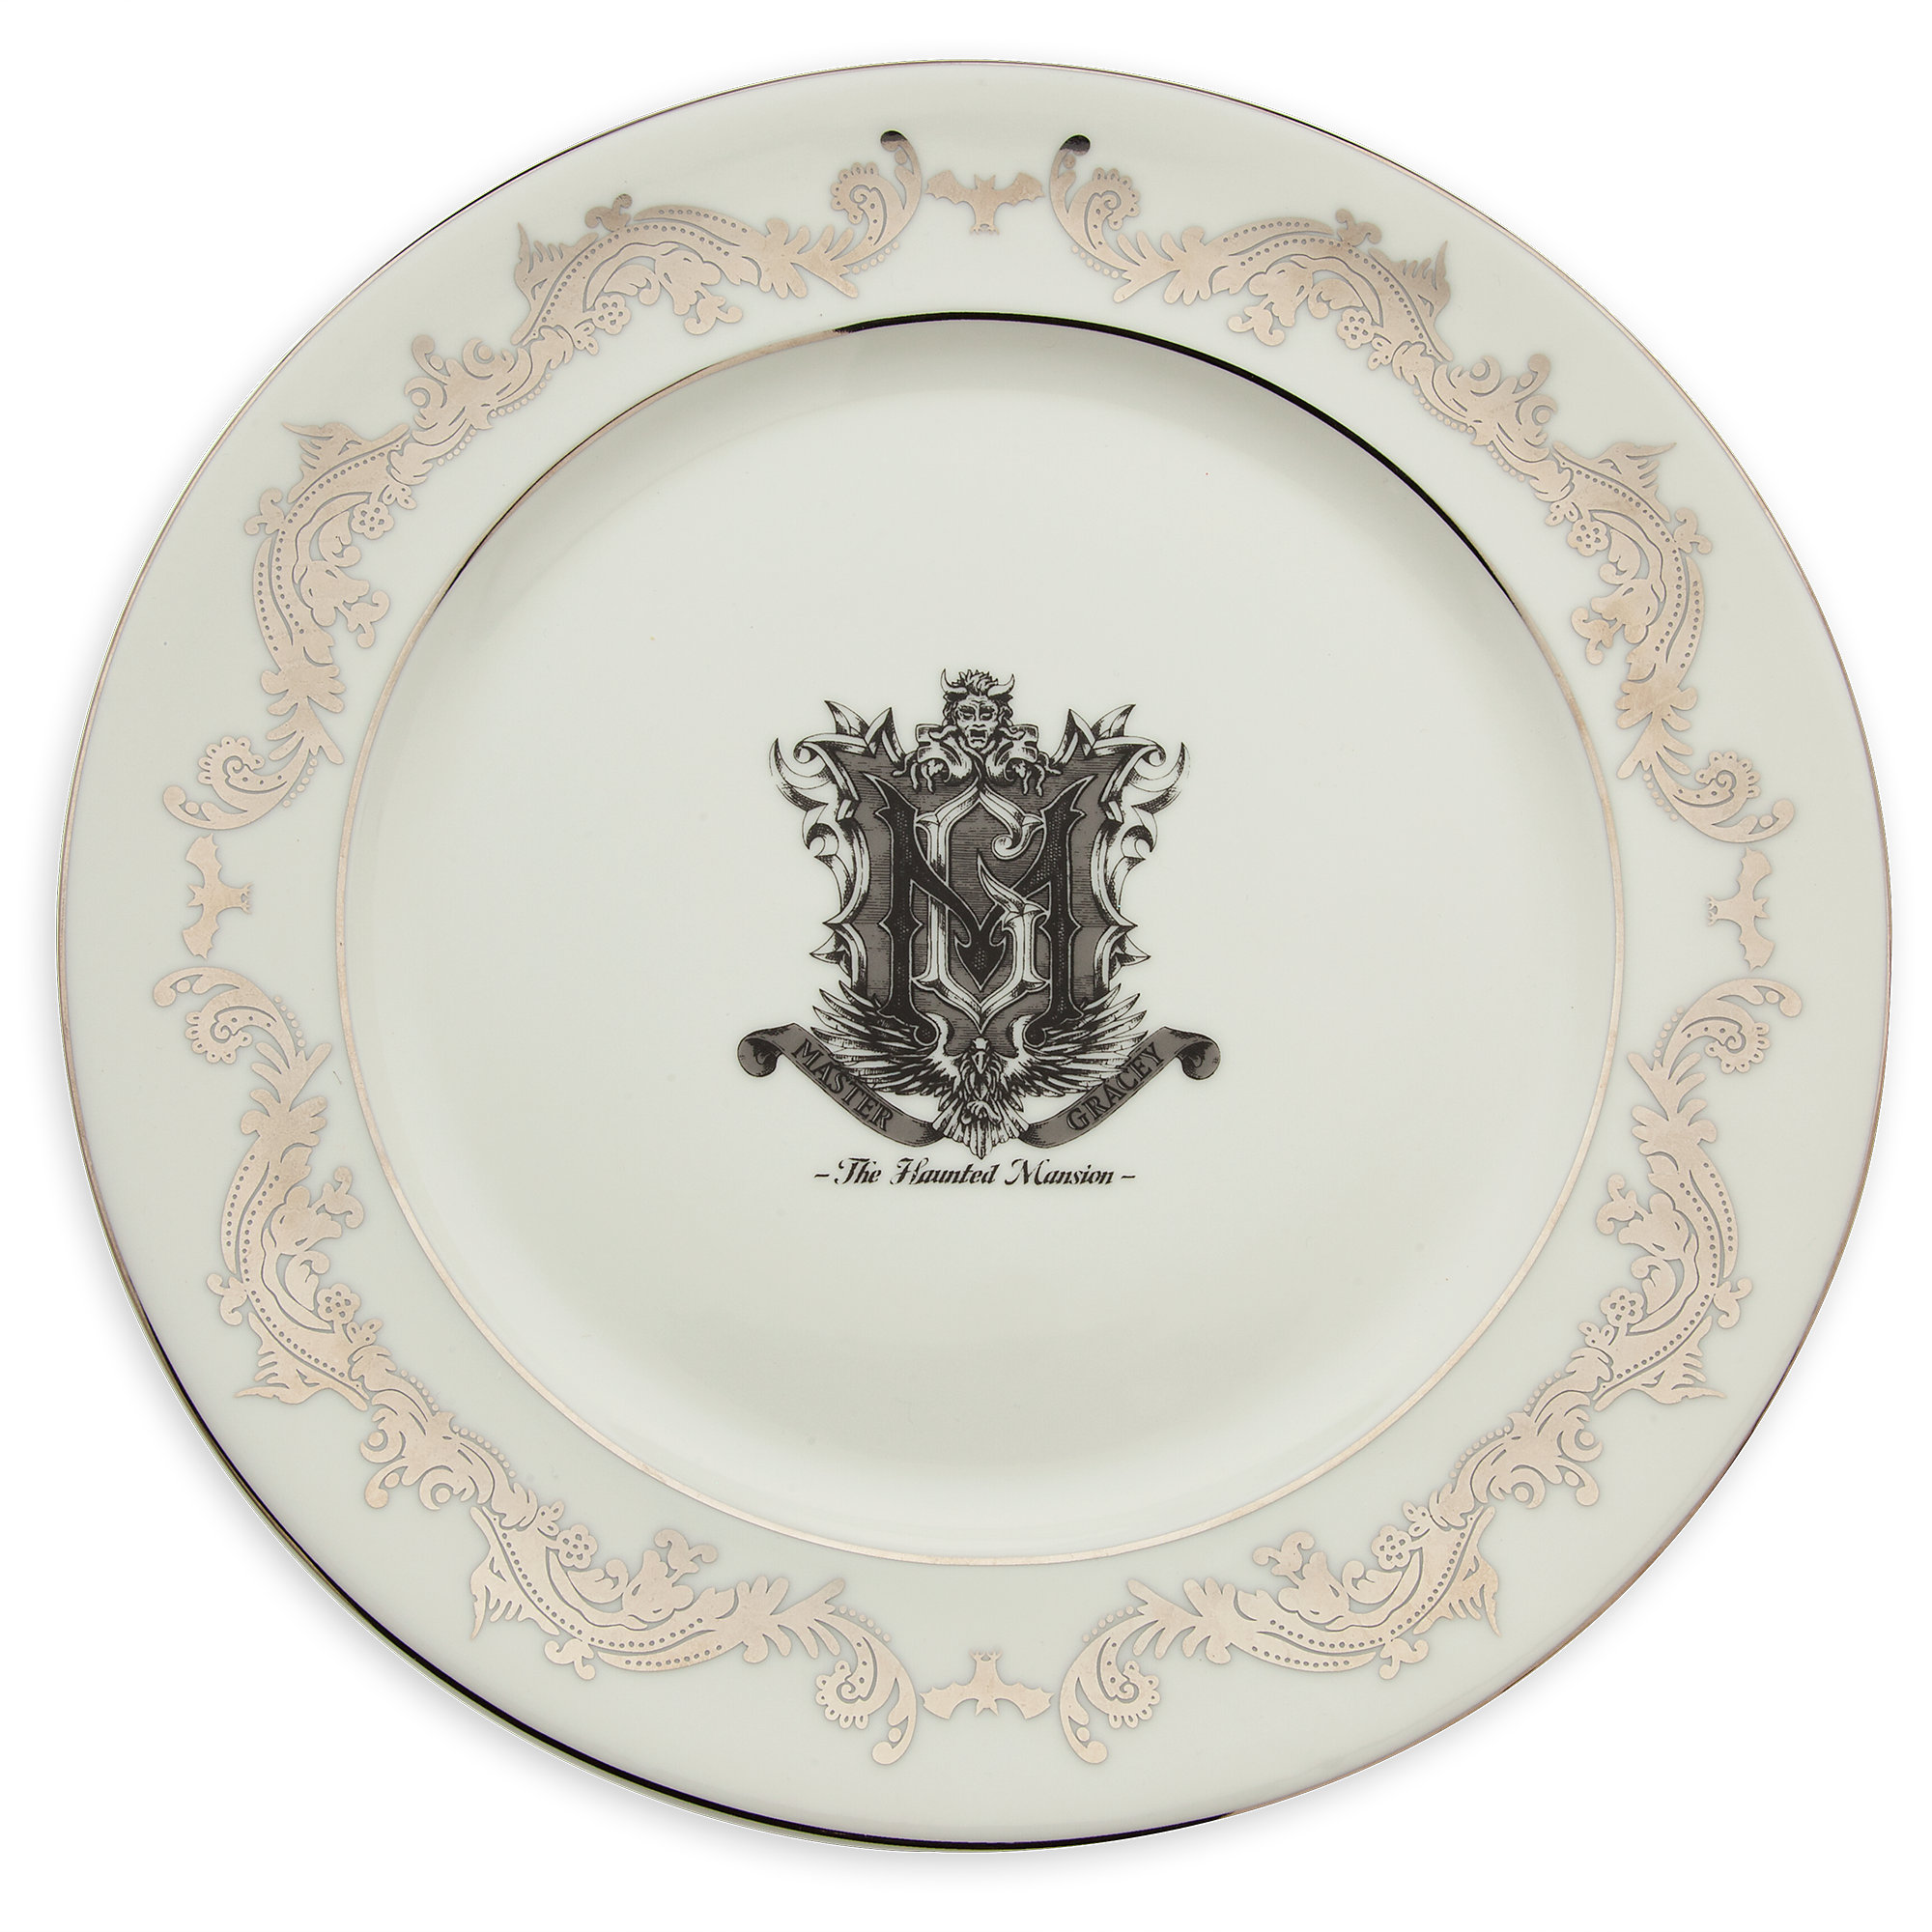 Product Image of The Haunted Mansion Porcelain Dinner Plate # 1  sc 1 st  shopDisney & The Haunted Mansion Porcelain Dinner Plate | shopDisney